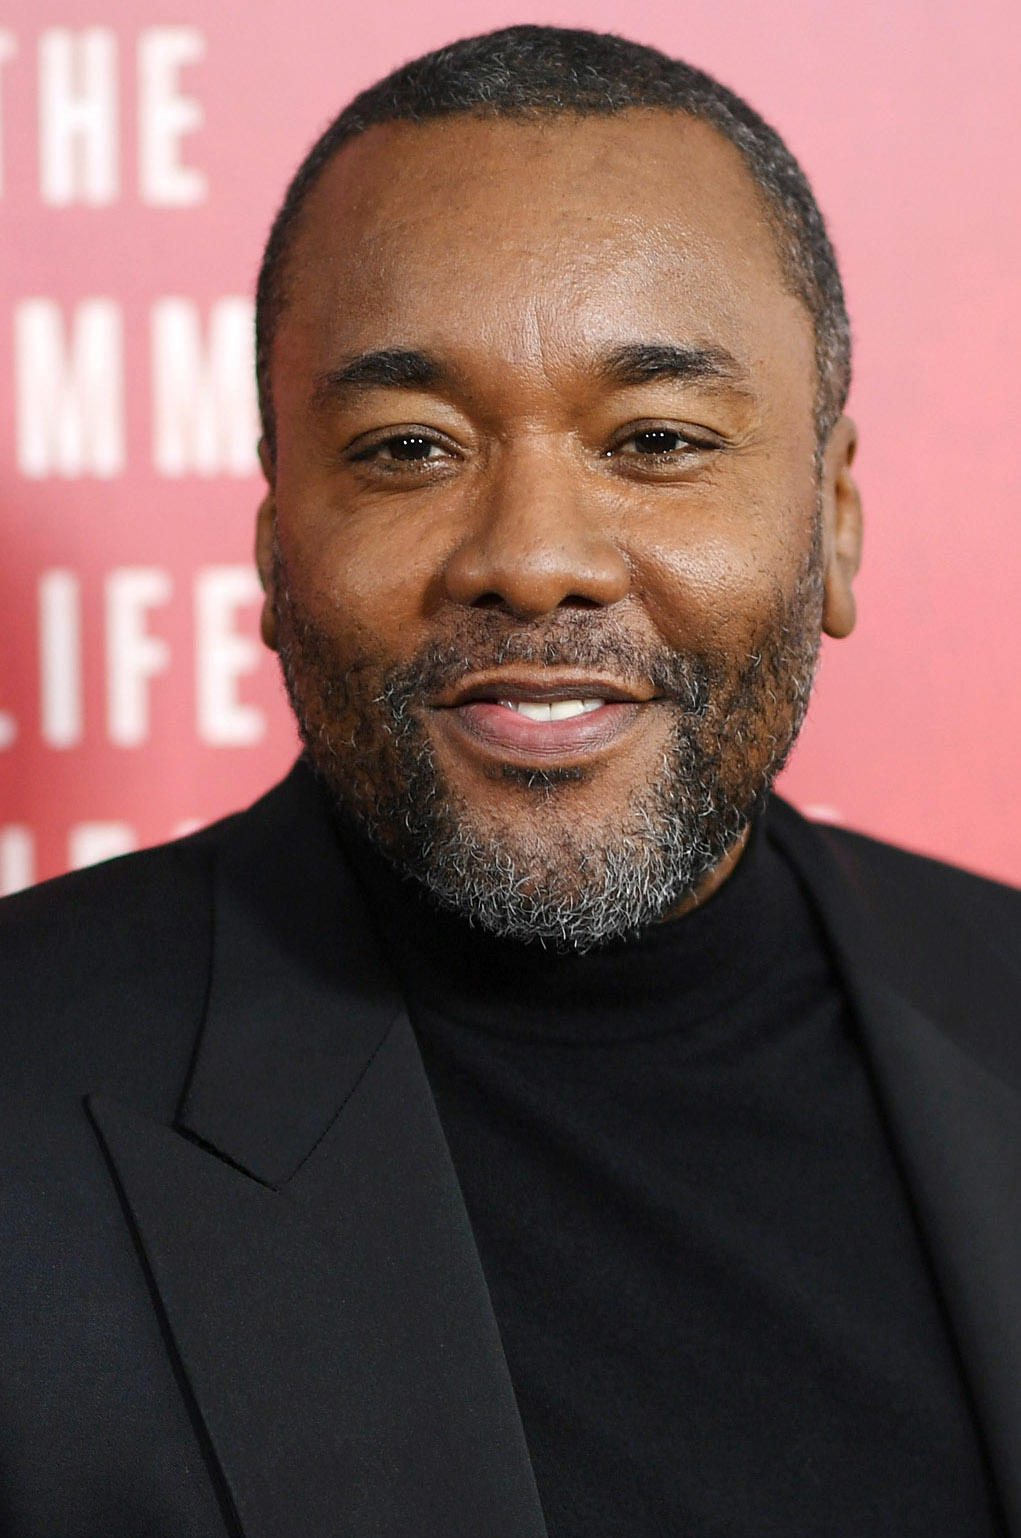 Lee Daniels at the New York premiere of